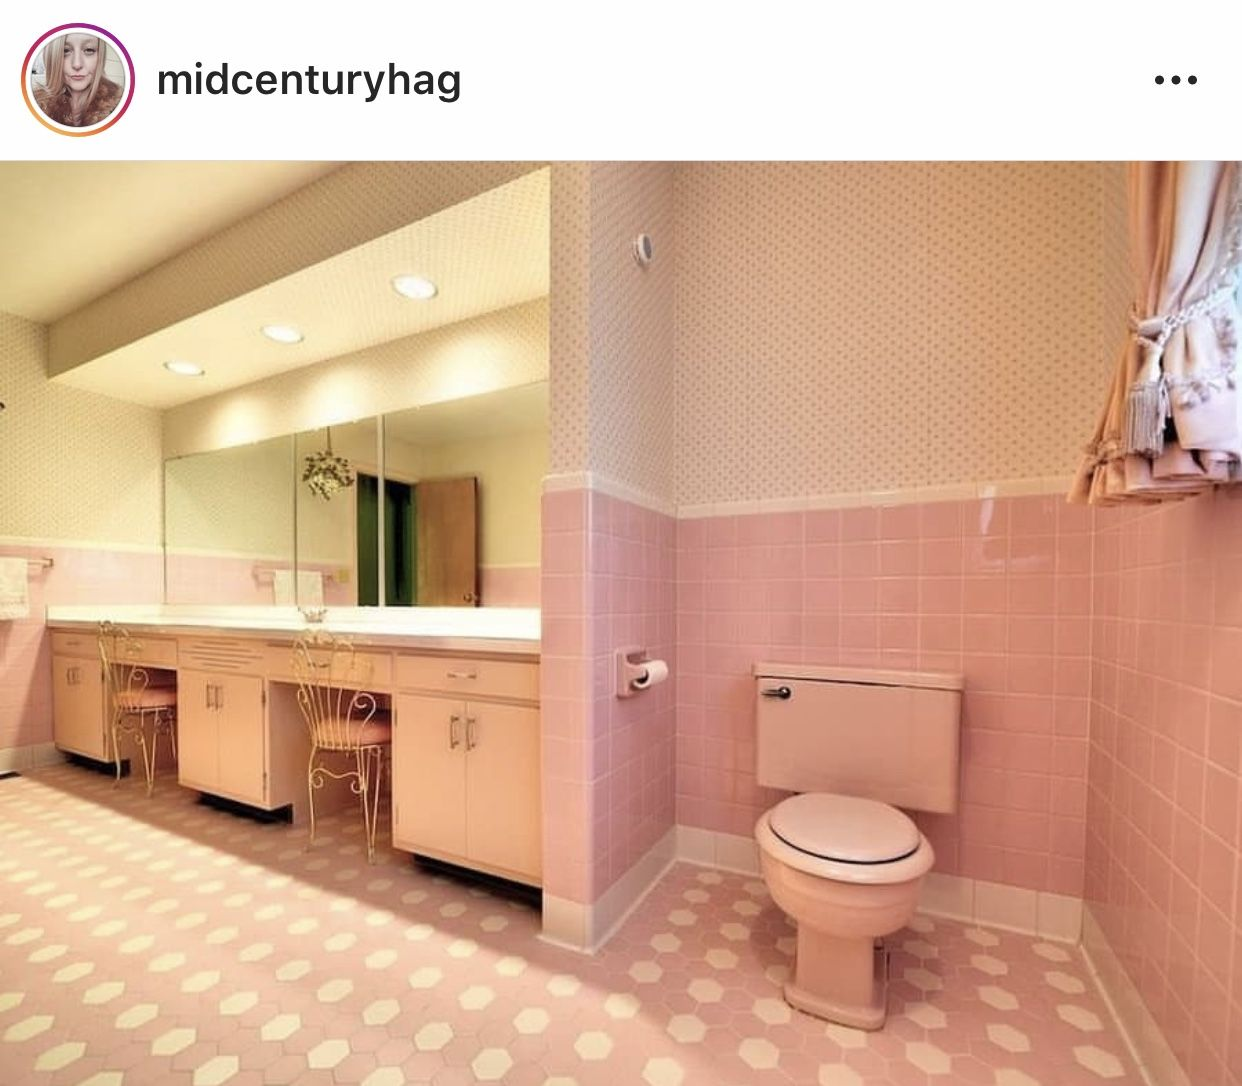 Pin By Kim On Colby Basement Bathroom Mid Century Bathroom Vintage Bathrooms Bathroom